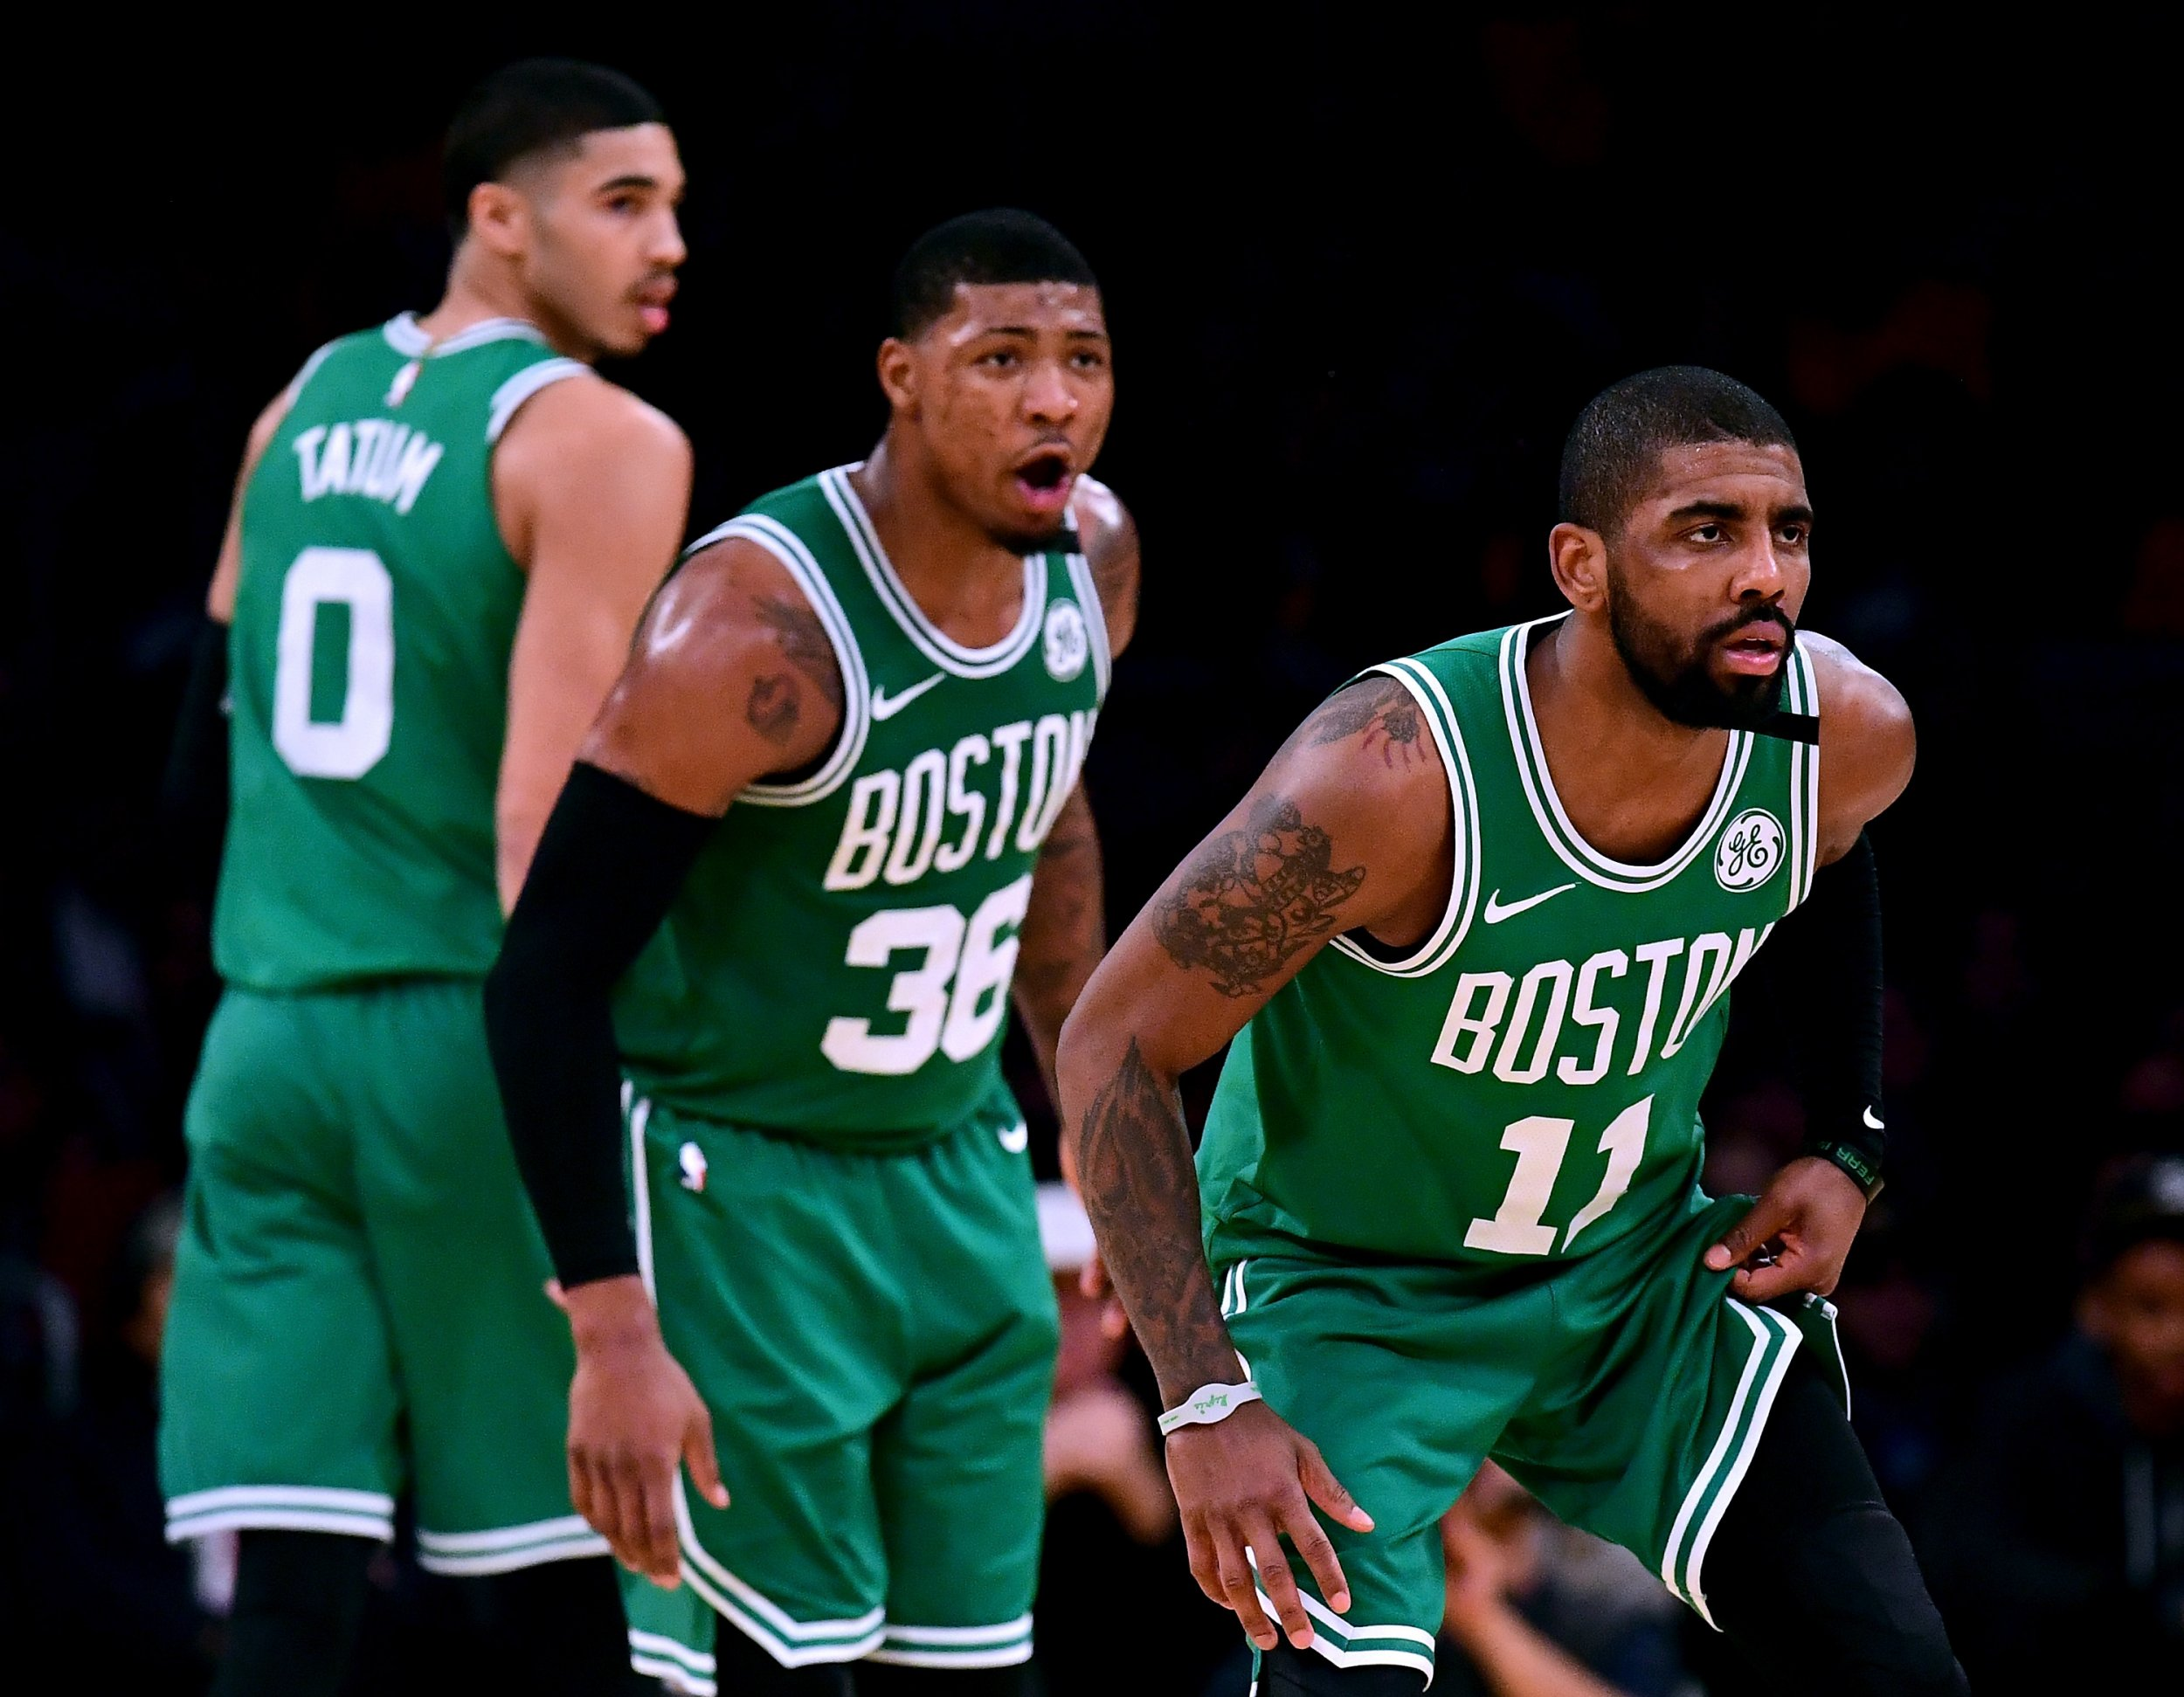 Celtics' Chaotic Loss to Lakers Triggered Bill Simmons on Twitter